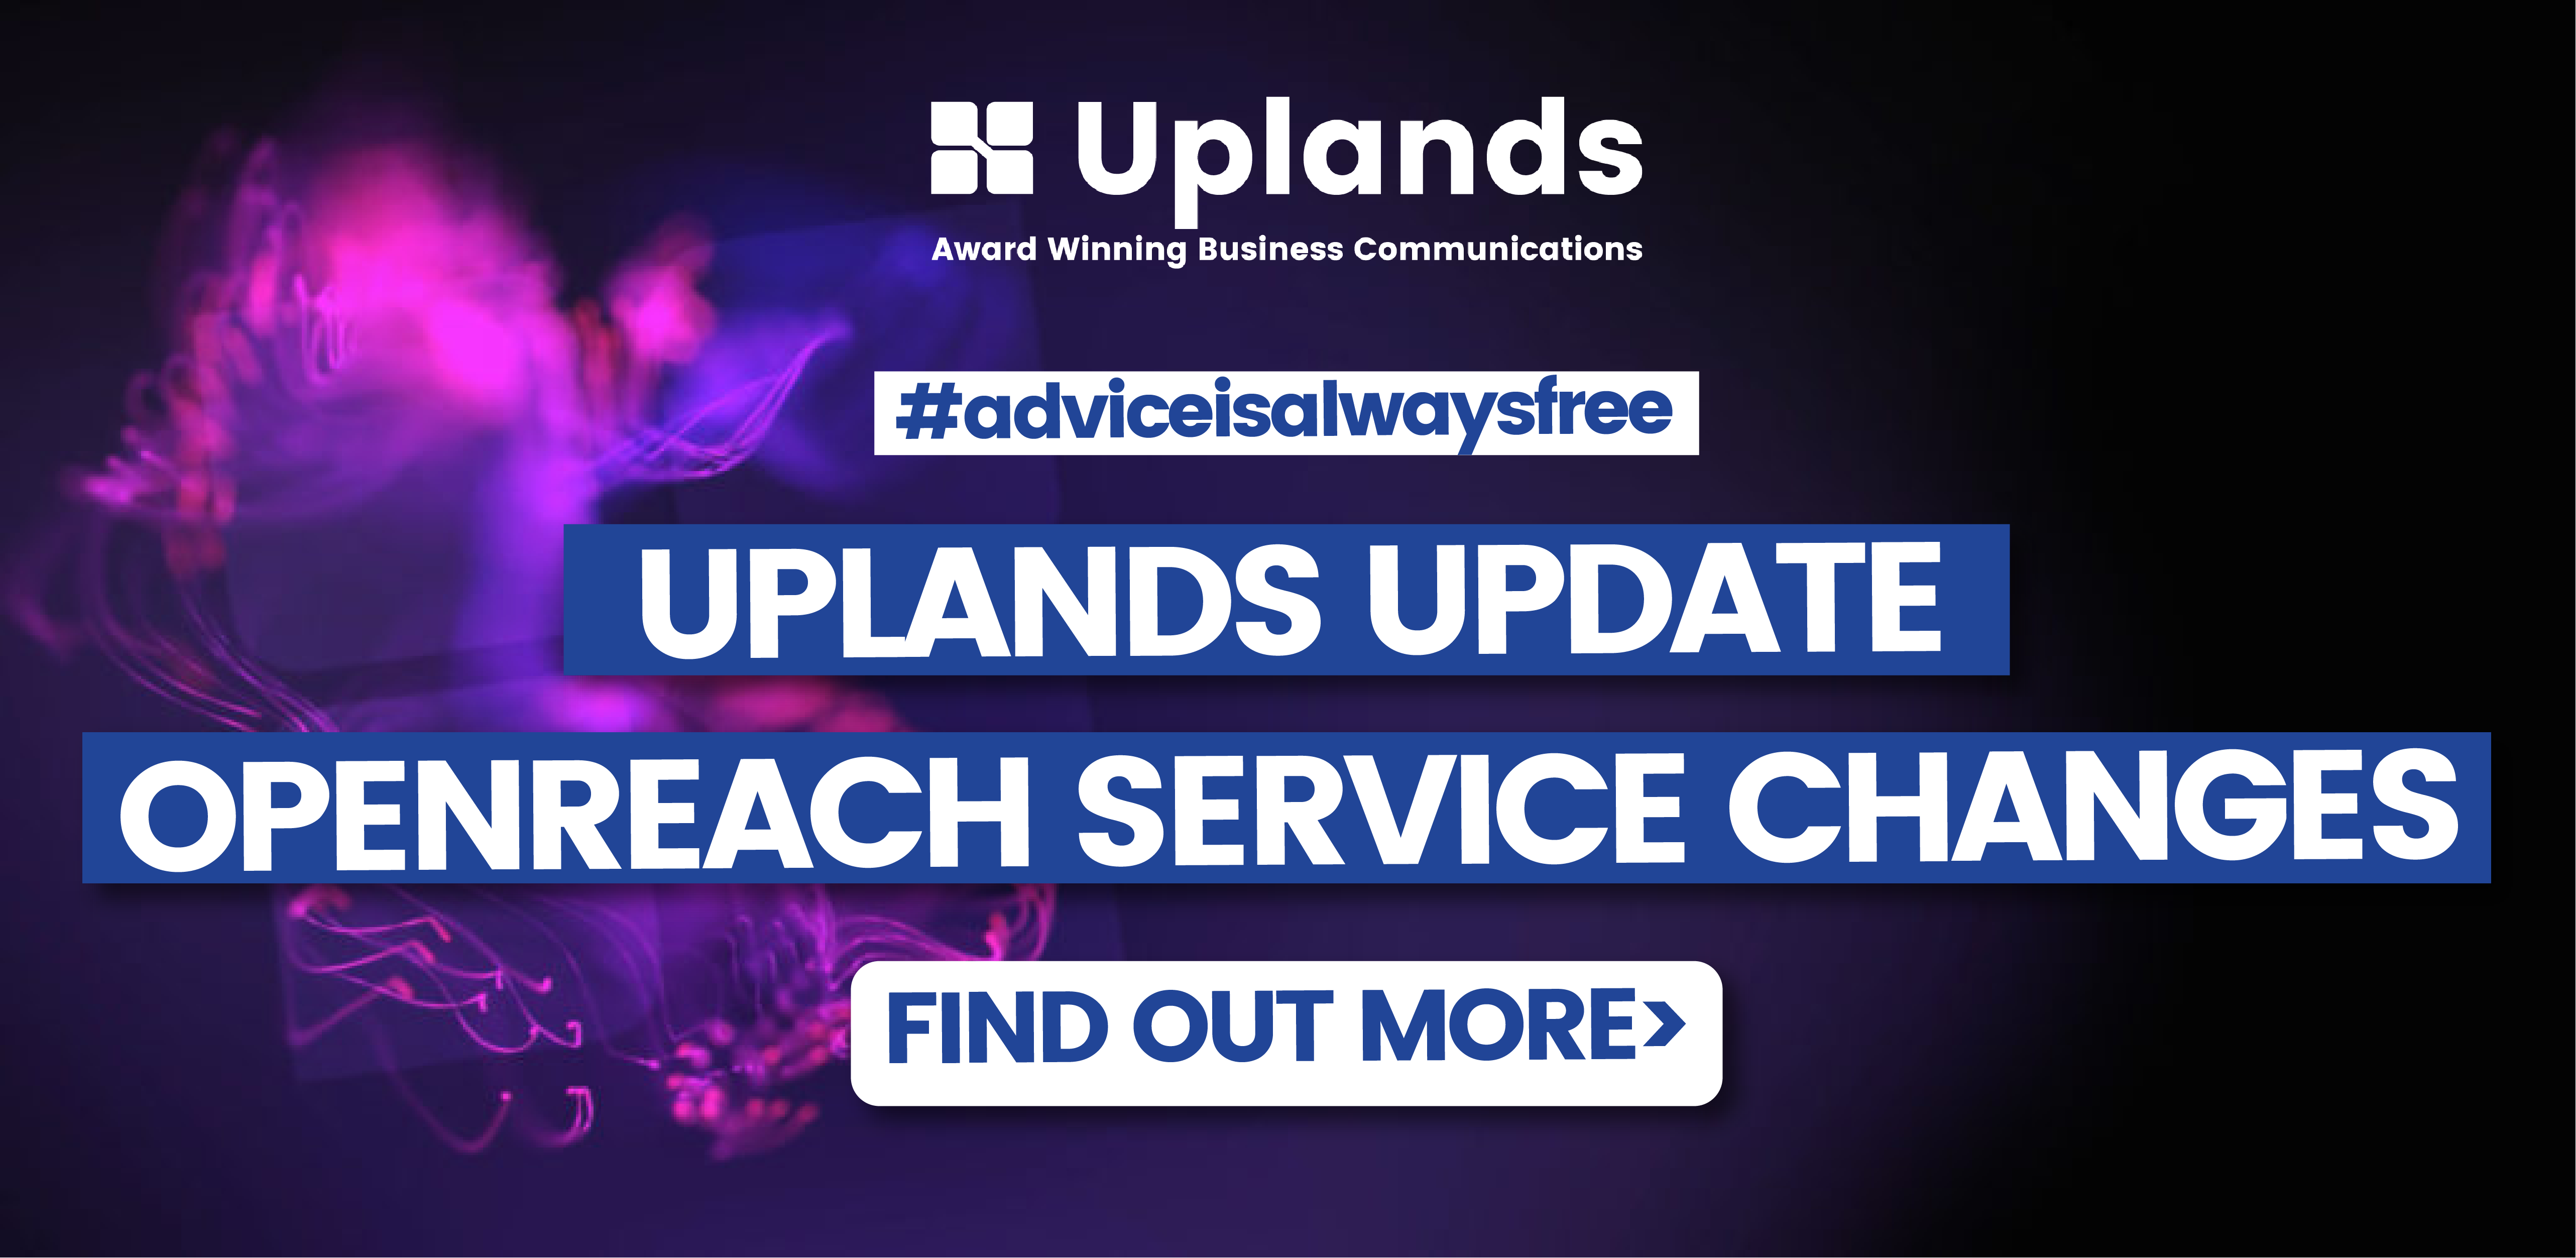 Uplands Update - Openreach service changes